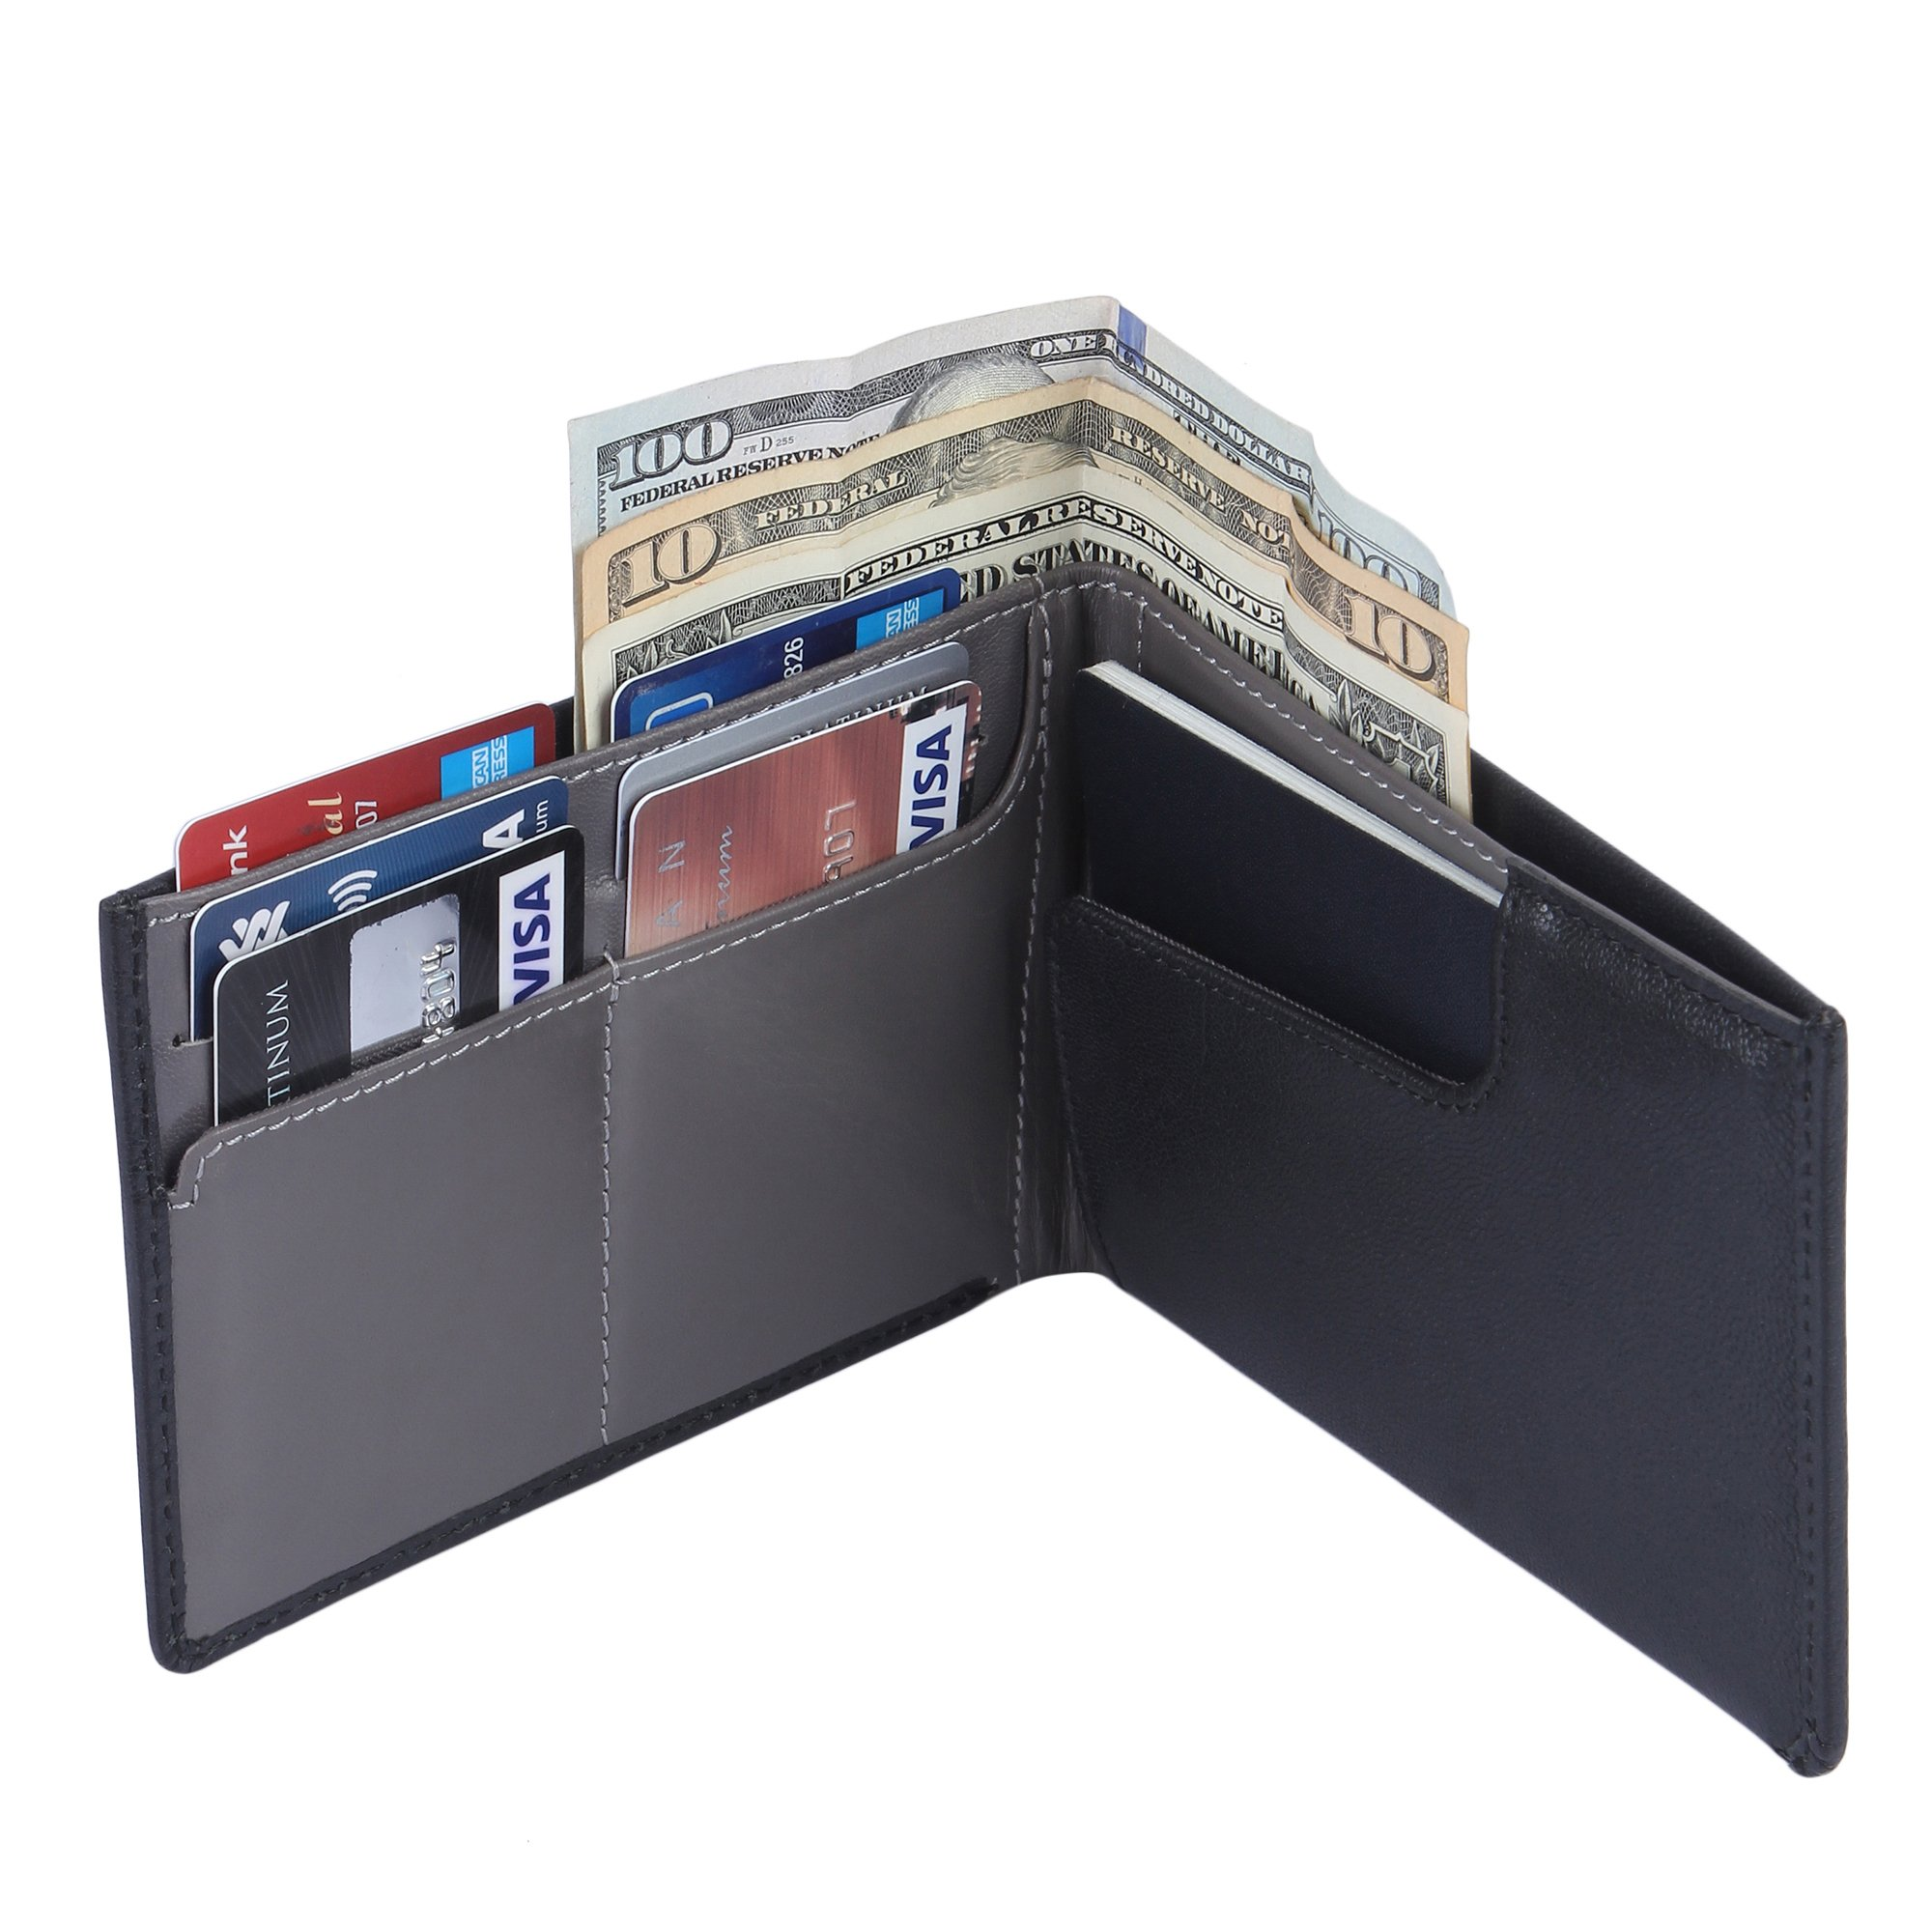 Genuine Sheep Leather RFID Blocking Travel Wallet & Passport Holder for Men and Women - Glossy Black by BELFORD